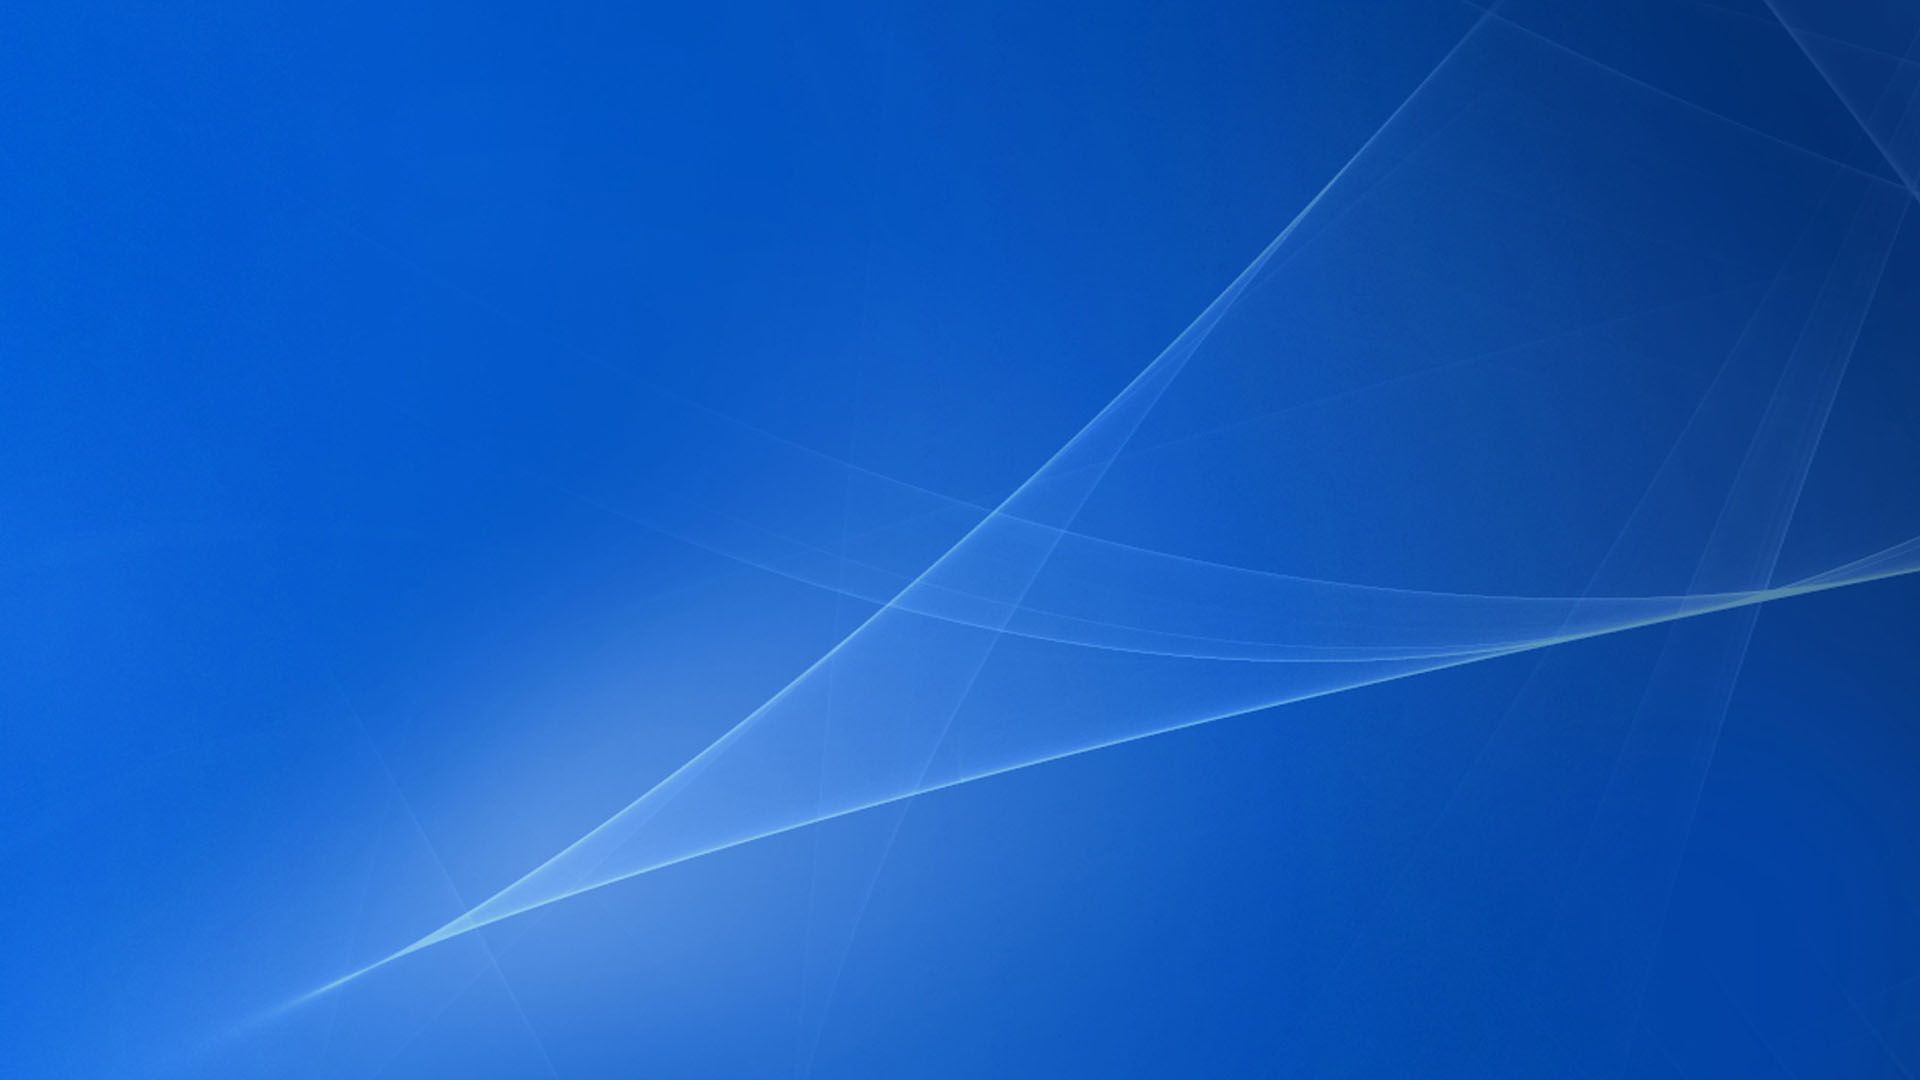 Wallpaper 1920x1080 Full Hd Blue